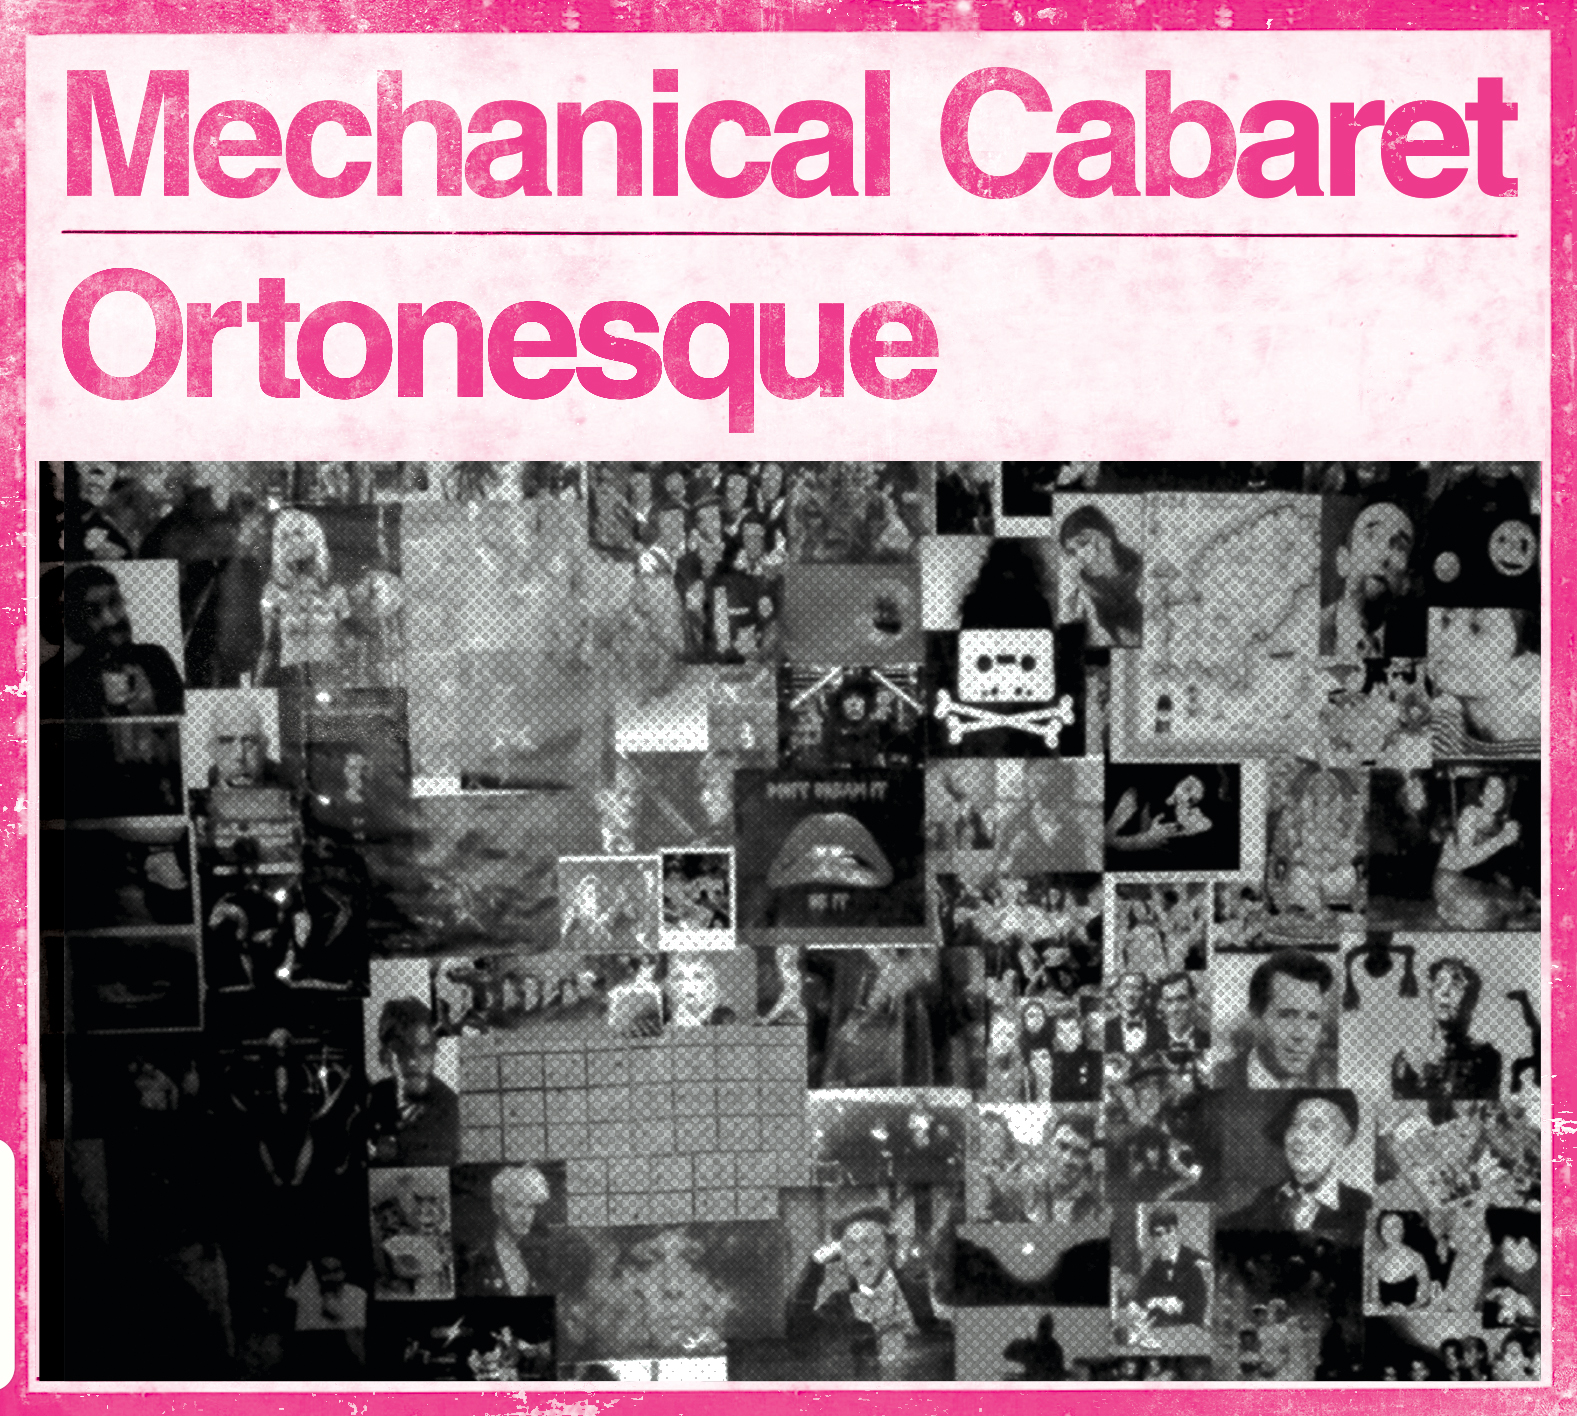 Mechanical Cabaret - I Lost My Friend to a Video Game